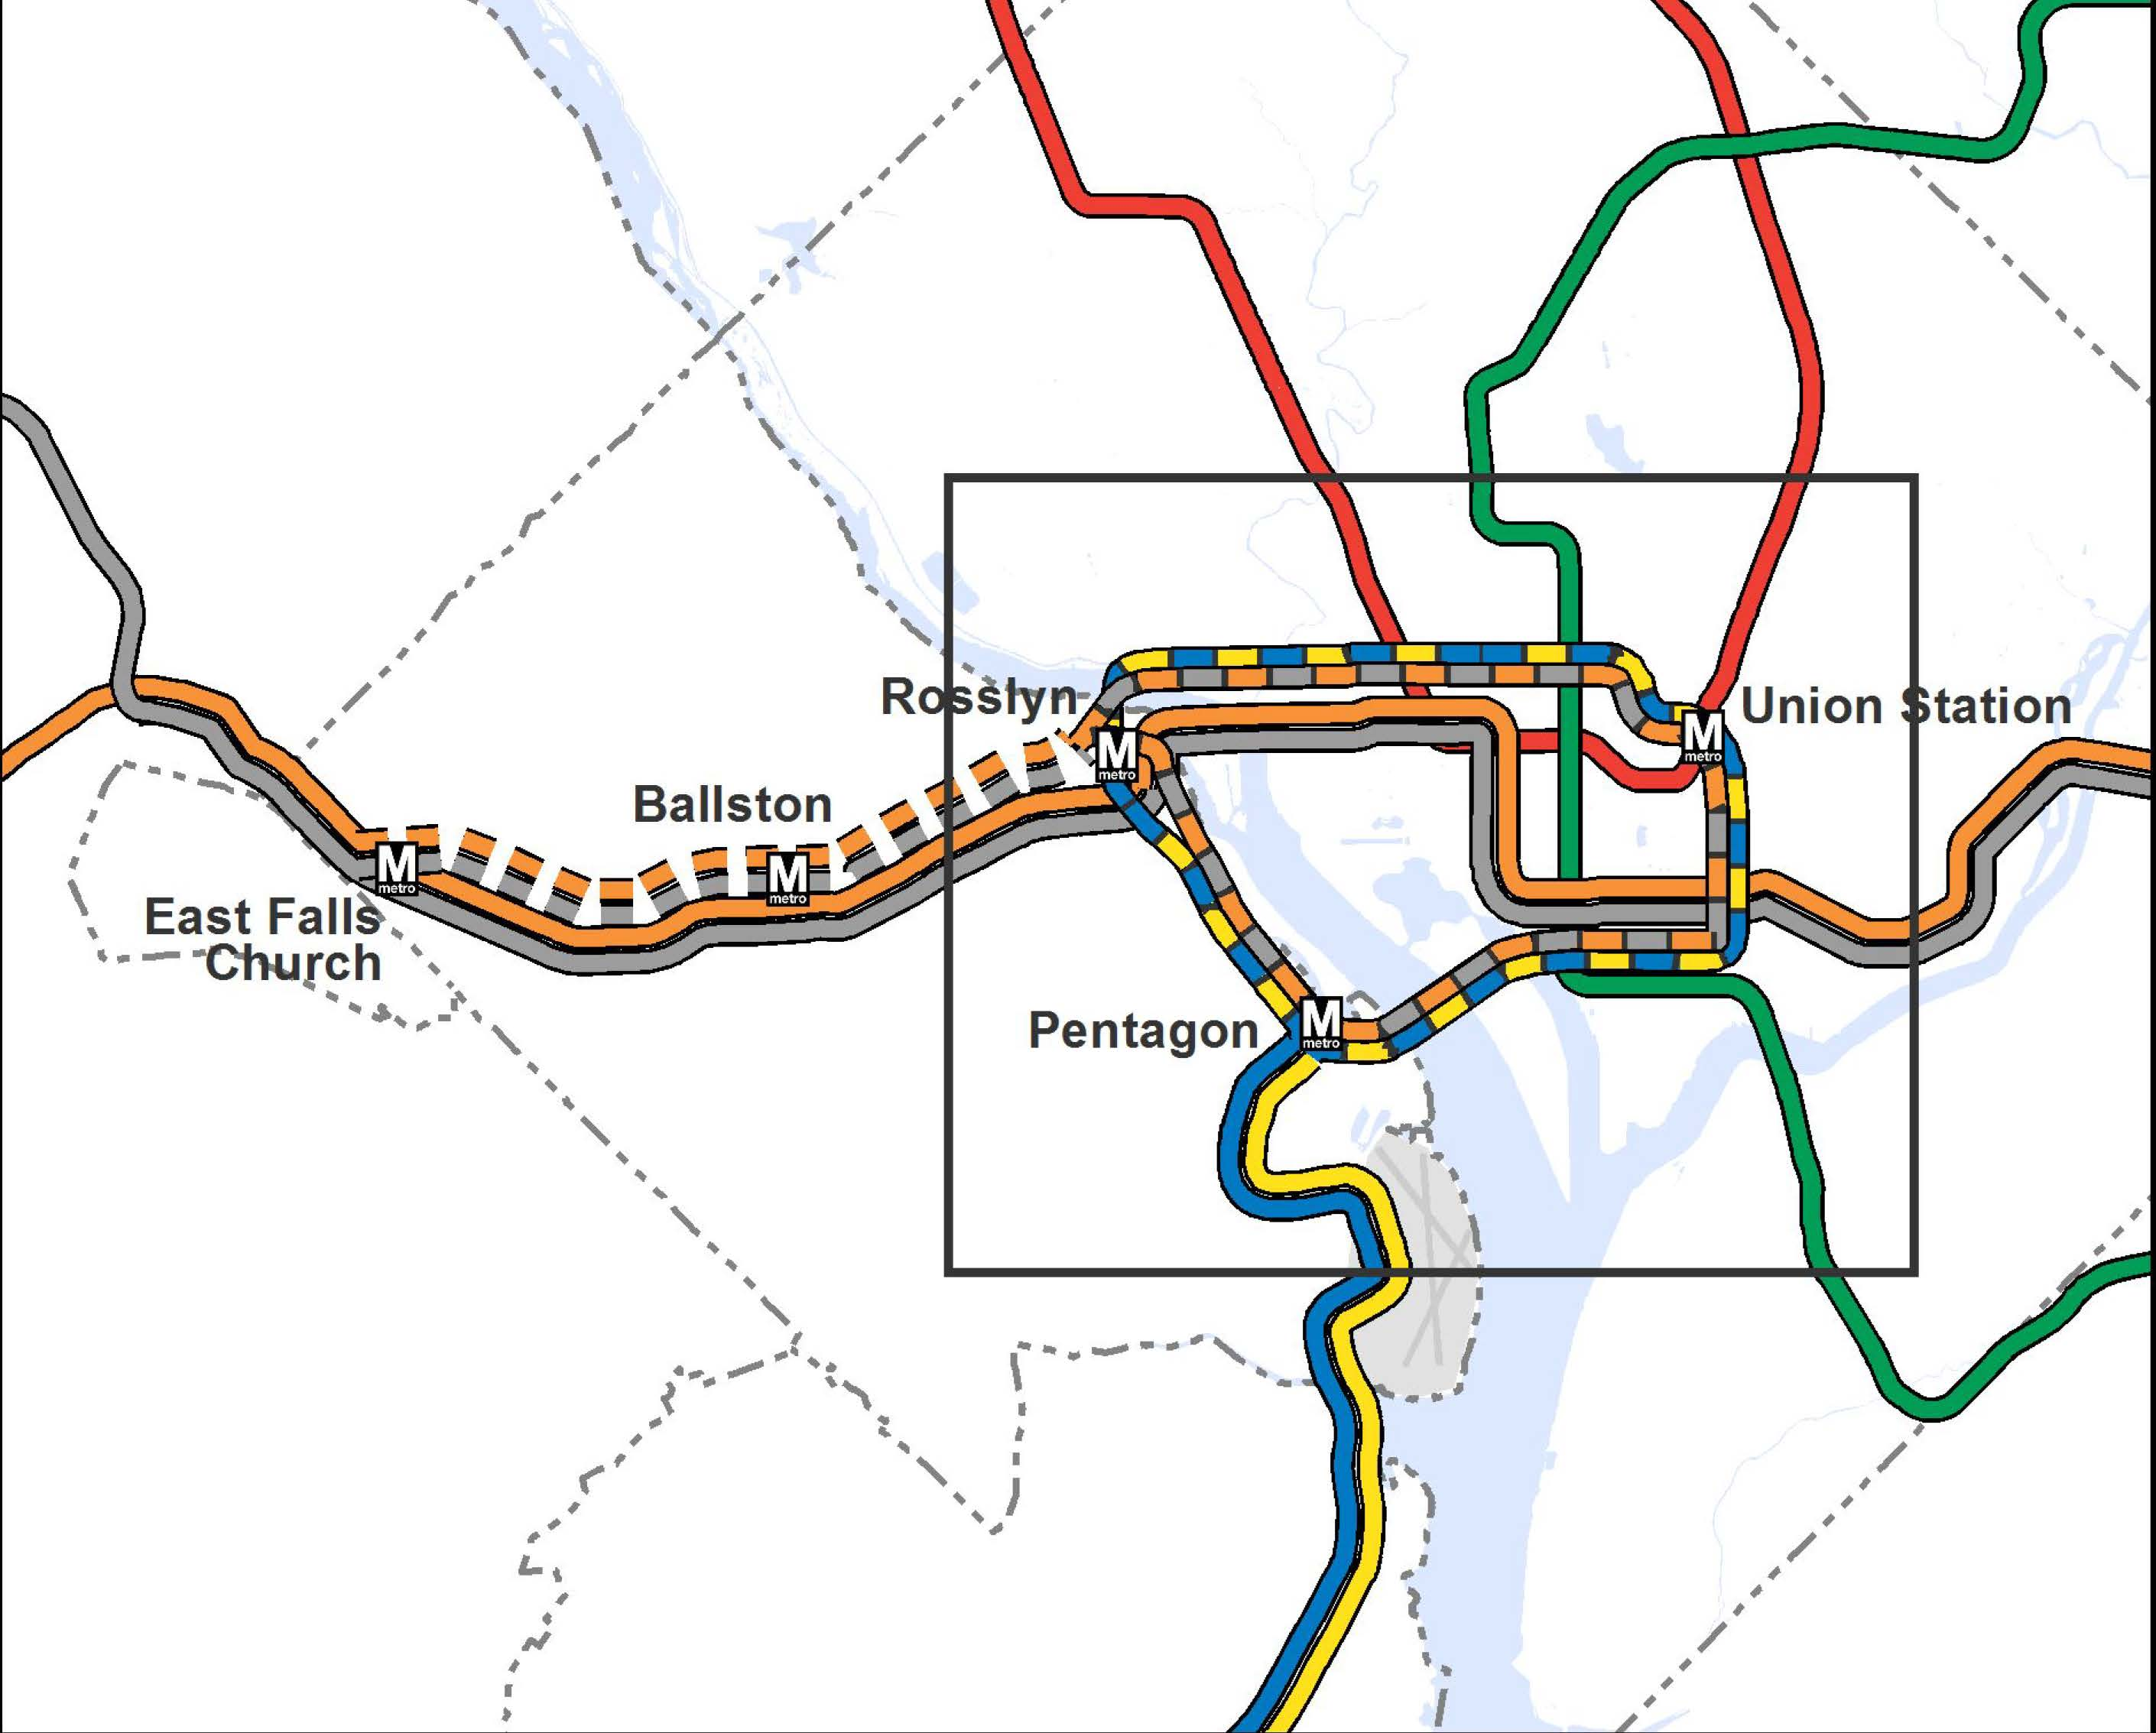 PlanItMetro Proposed 2040 Metrorail Network